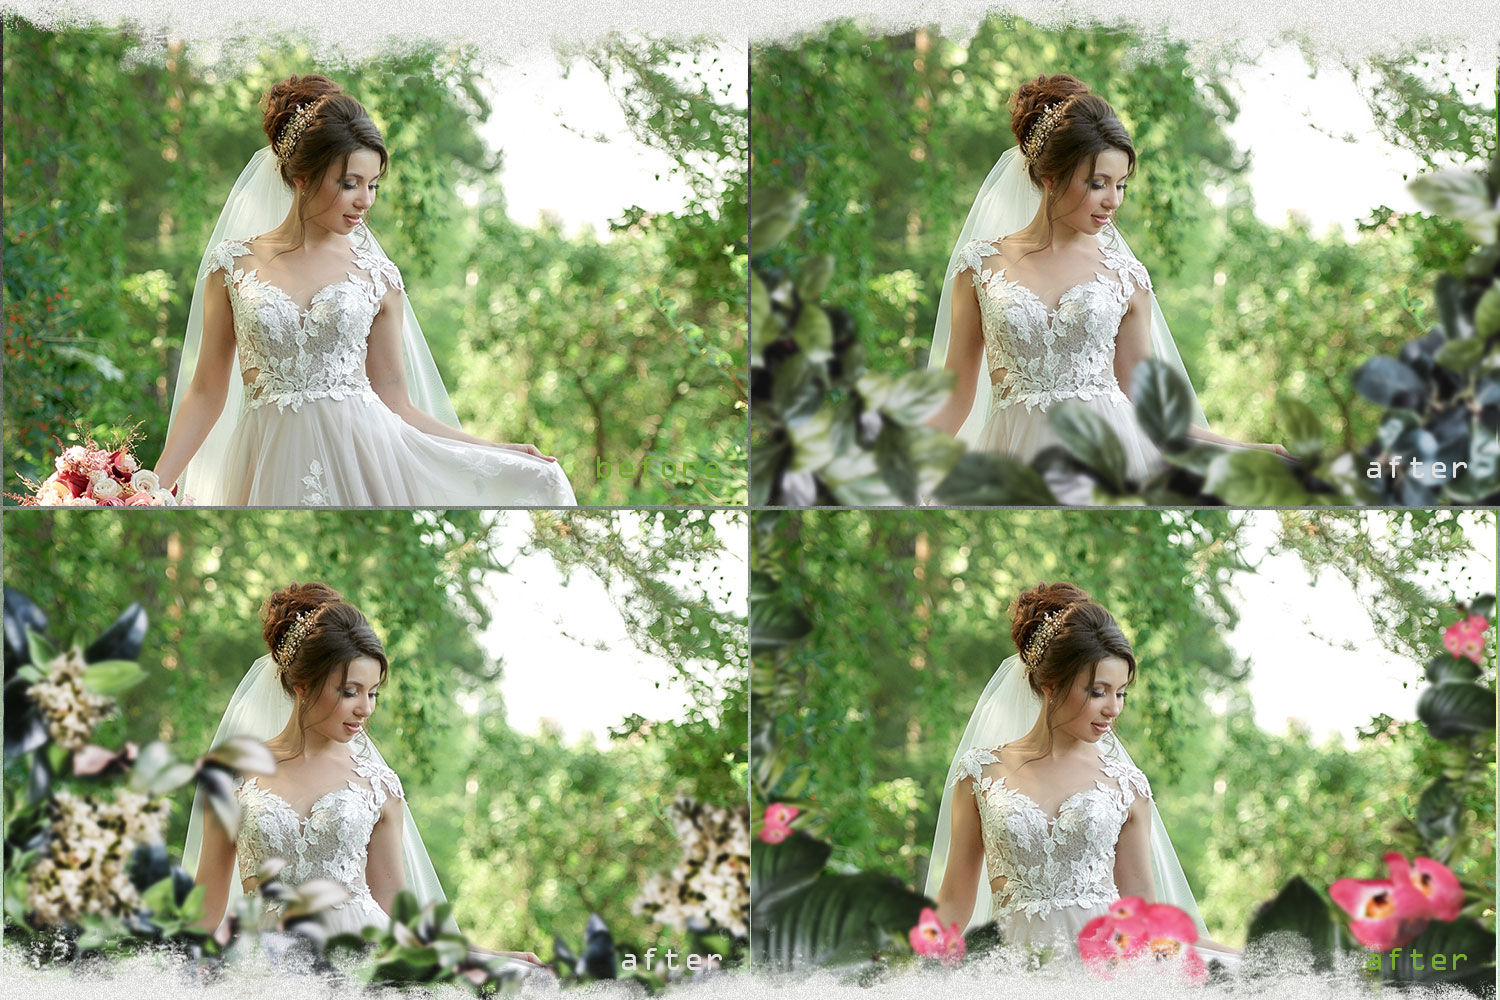 Summer overlays templates frames textures backdrop wedding example image 7